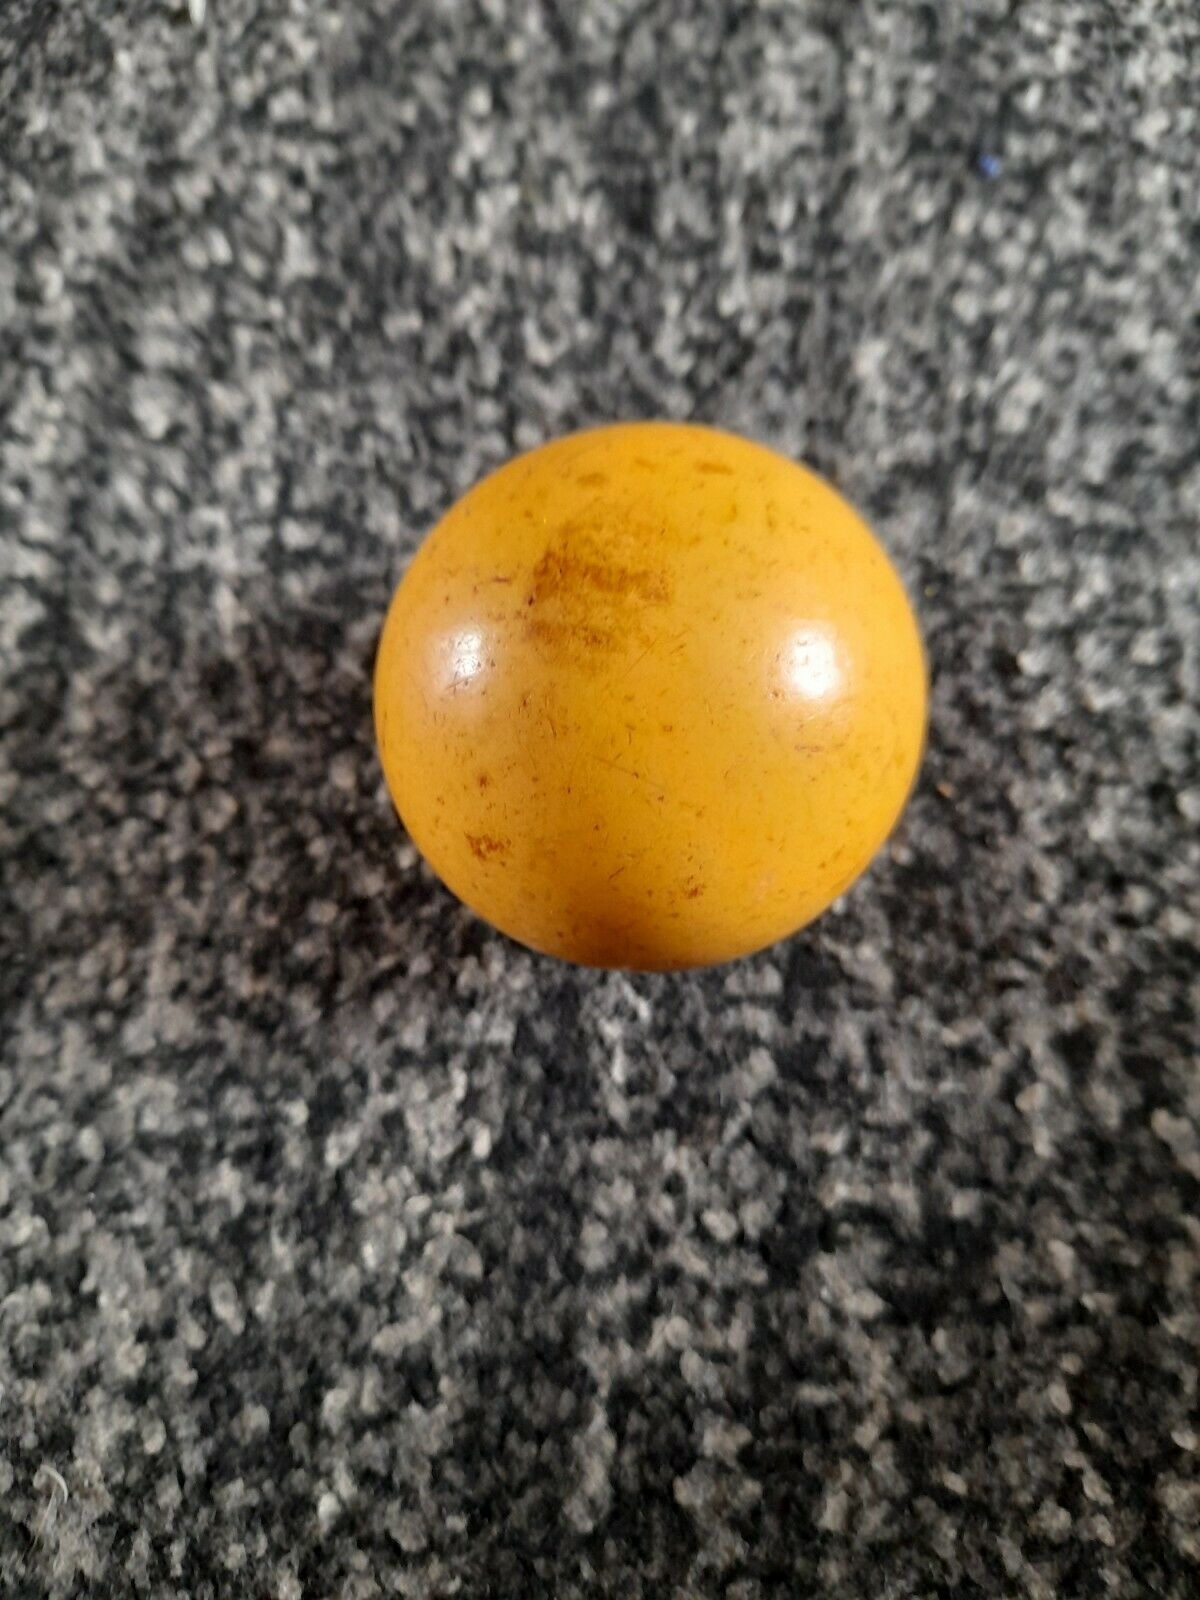 Standard Outdoor Yellow Lawn Bowls Jack (63-64mm, approx 259g) indoor